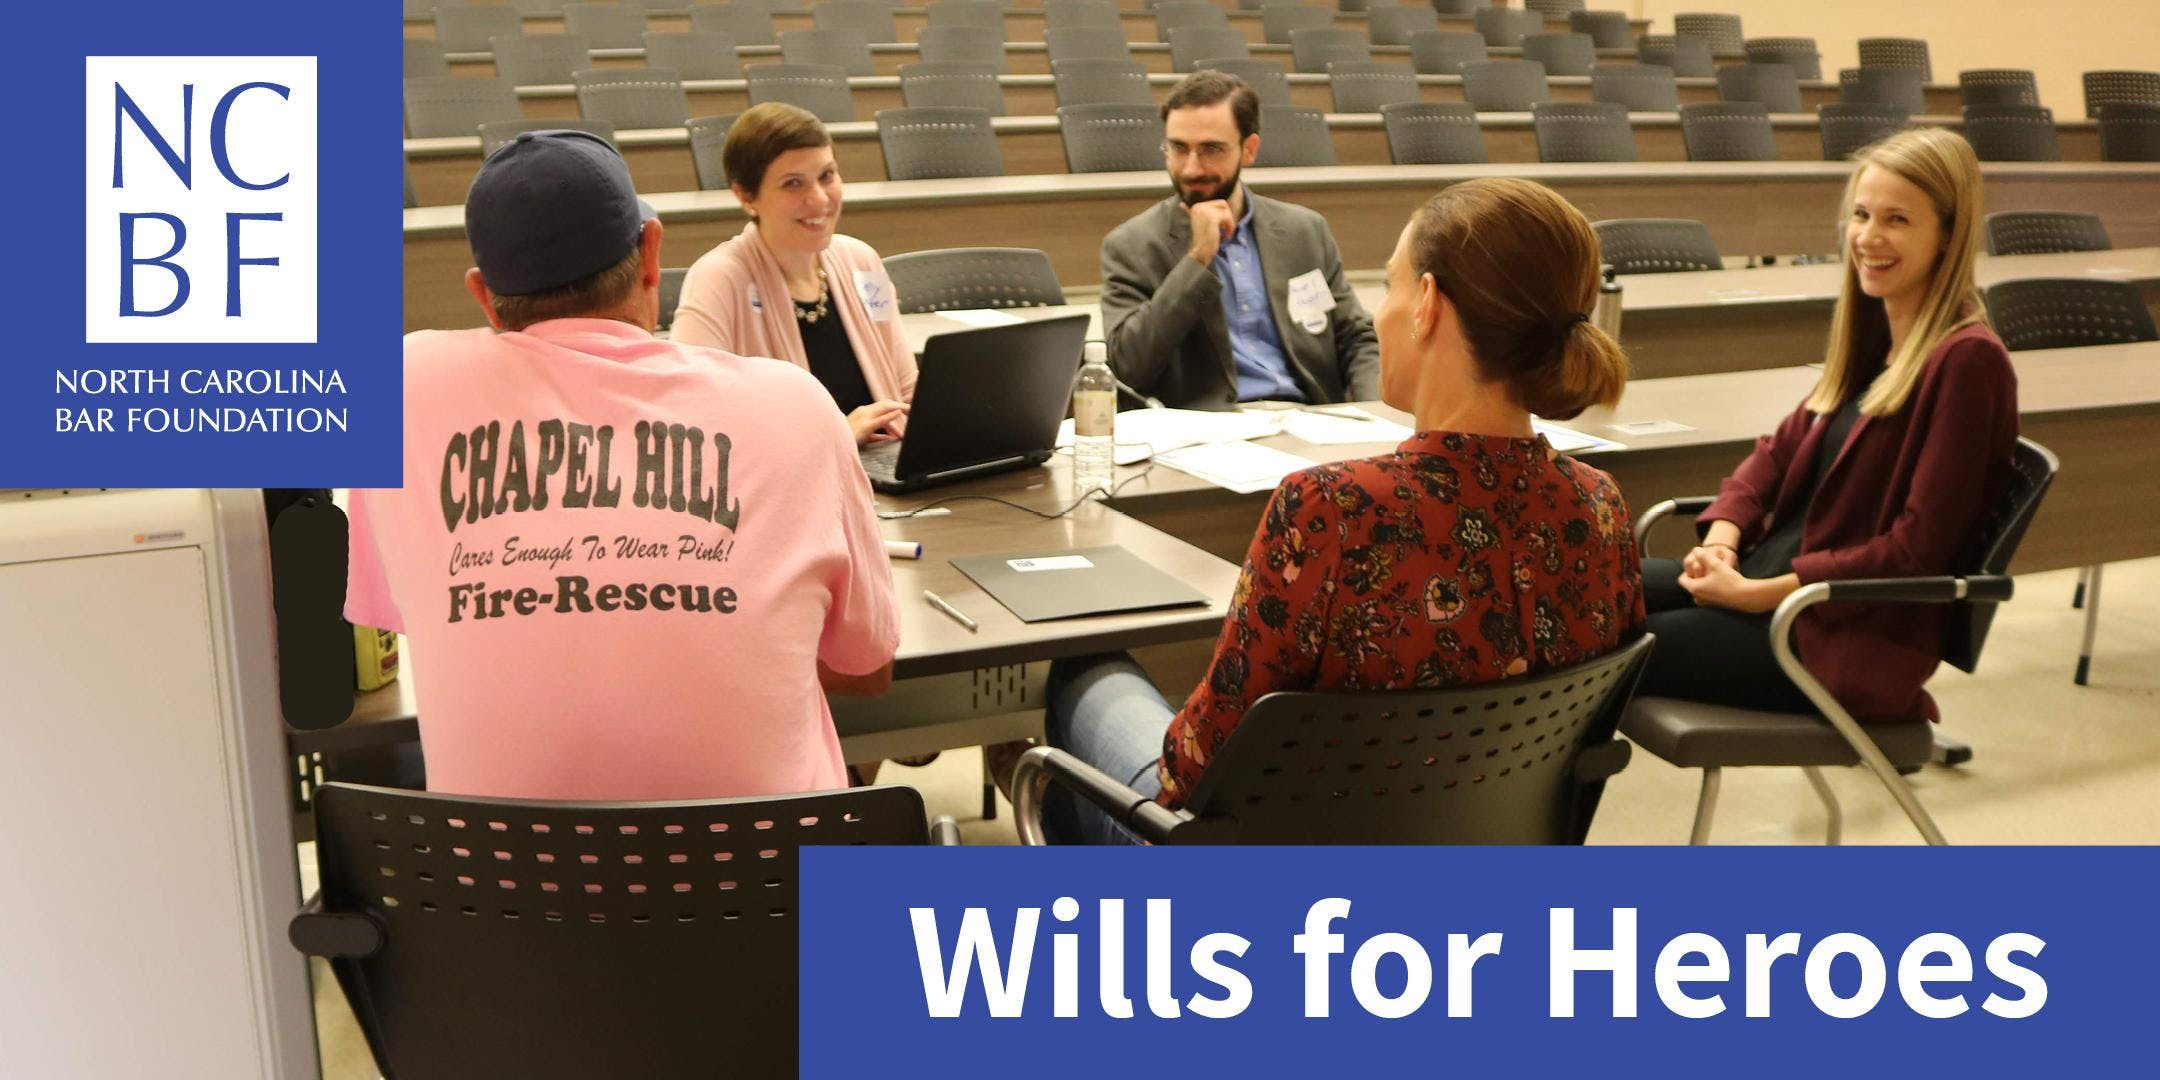 Wills for Heroes Clinic (10/12/19 - Chapel Hill): Sign up for an appointment!